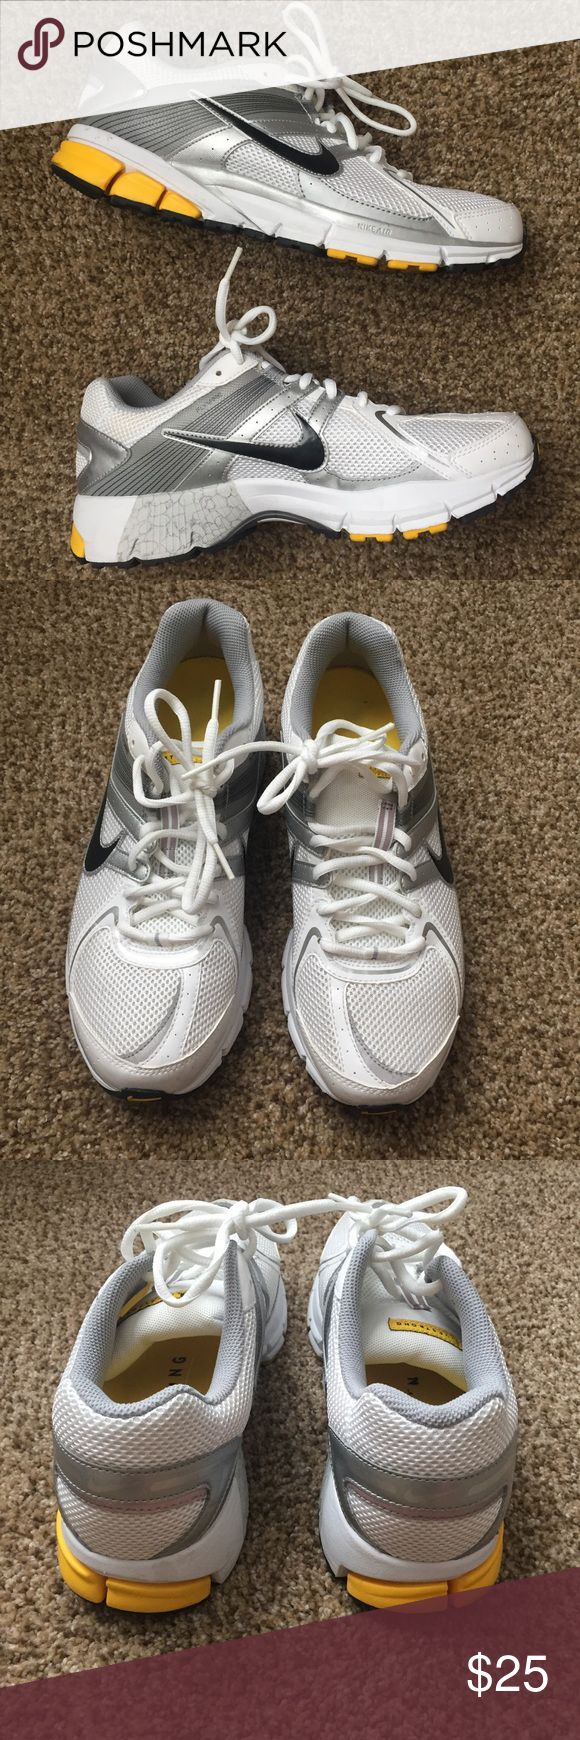 Nike Livestrong Air Span+7, Men's Size 9.5 Nike Livestrong Air Span+7, Men's Size 9.5 - Like new condition! Nike Shoes Athletic Shoes